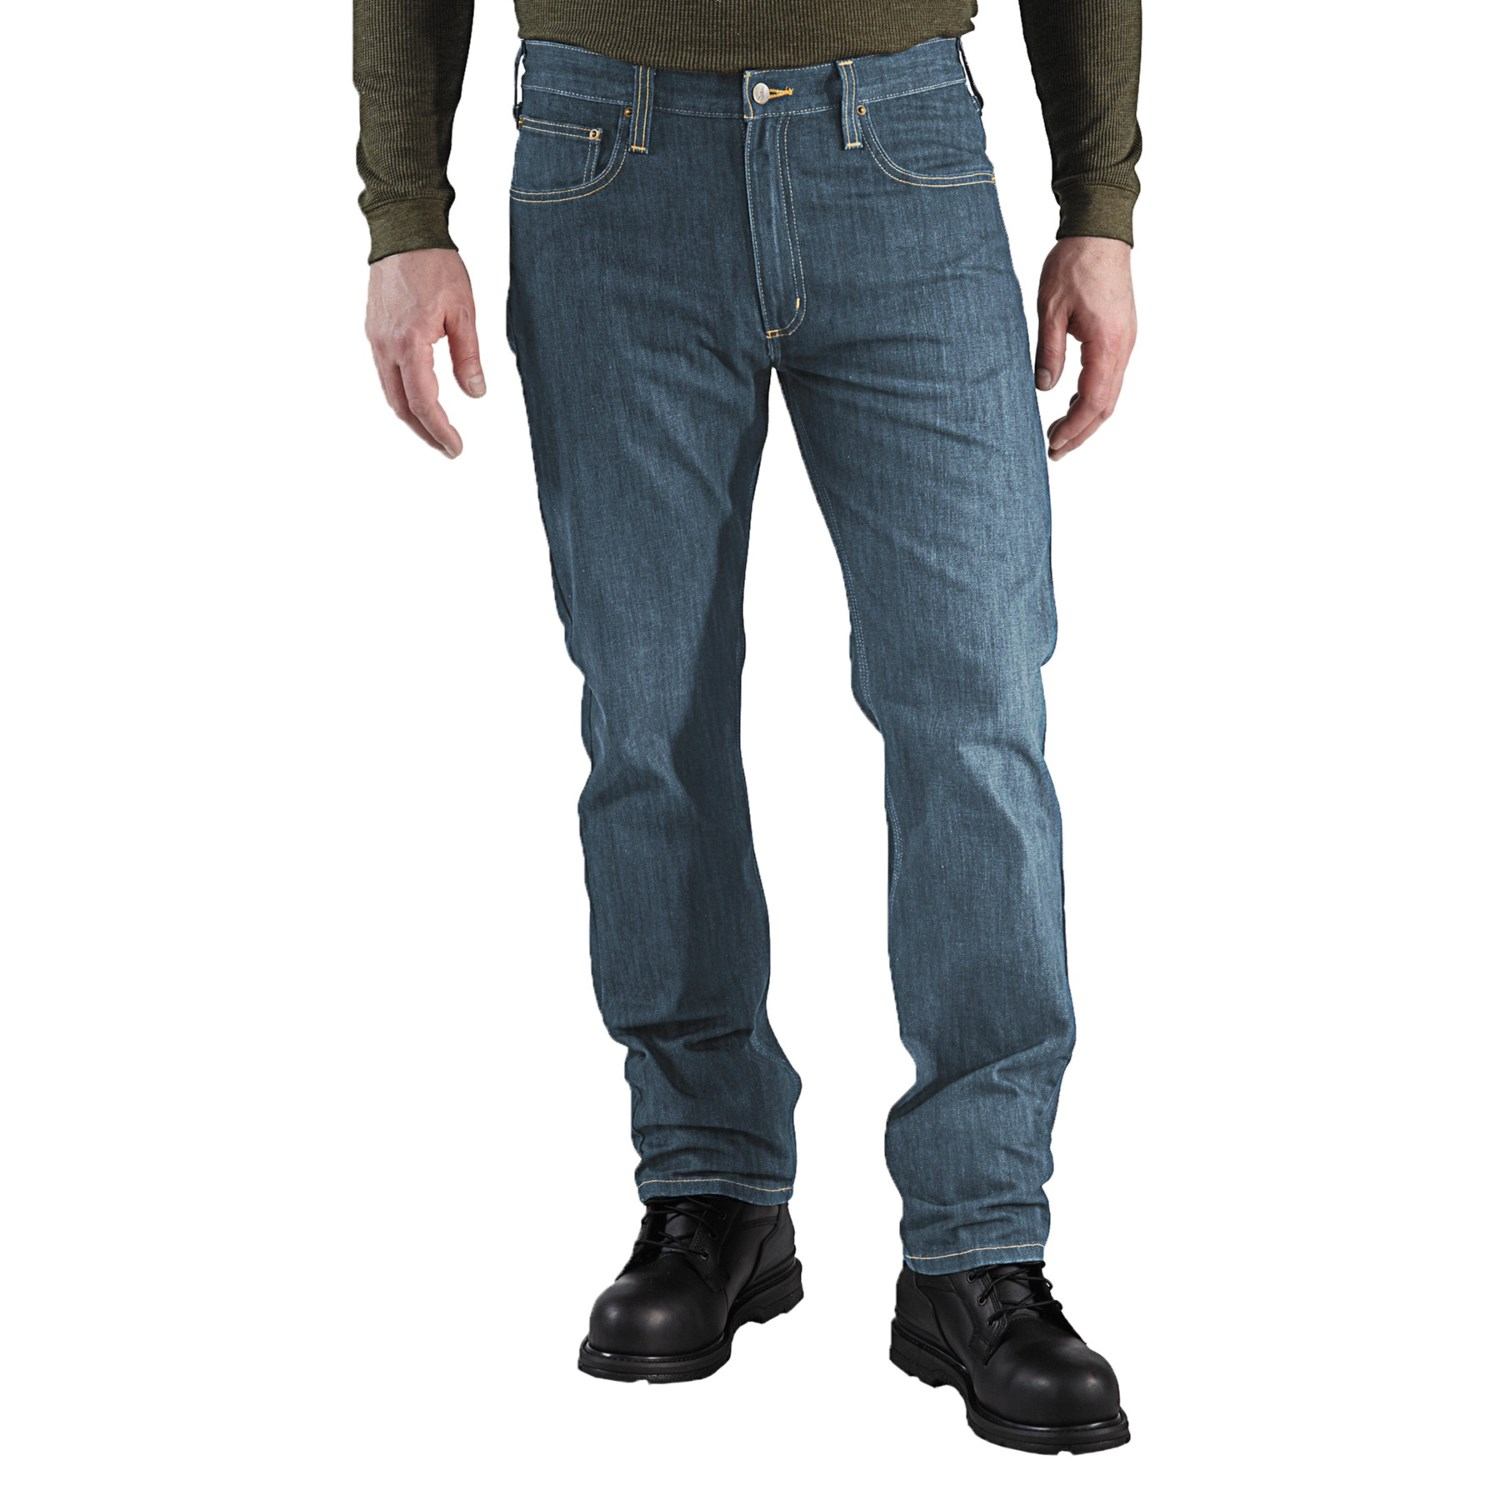 carhartt straight fit denim jeans for men. Black Bedroom Furniture Sets. Home Design Ideas